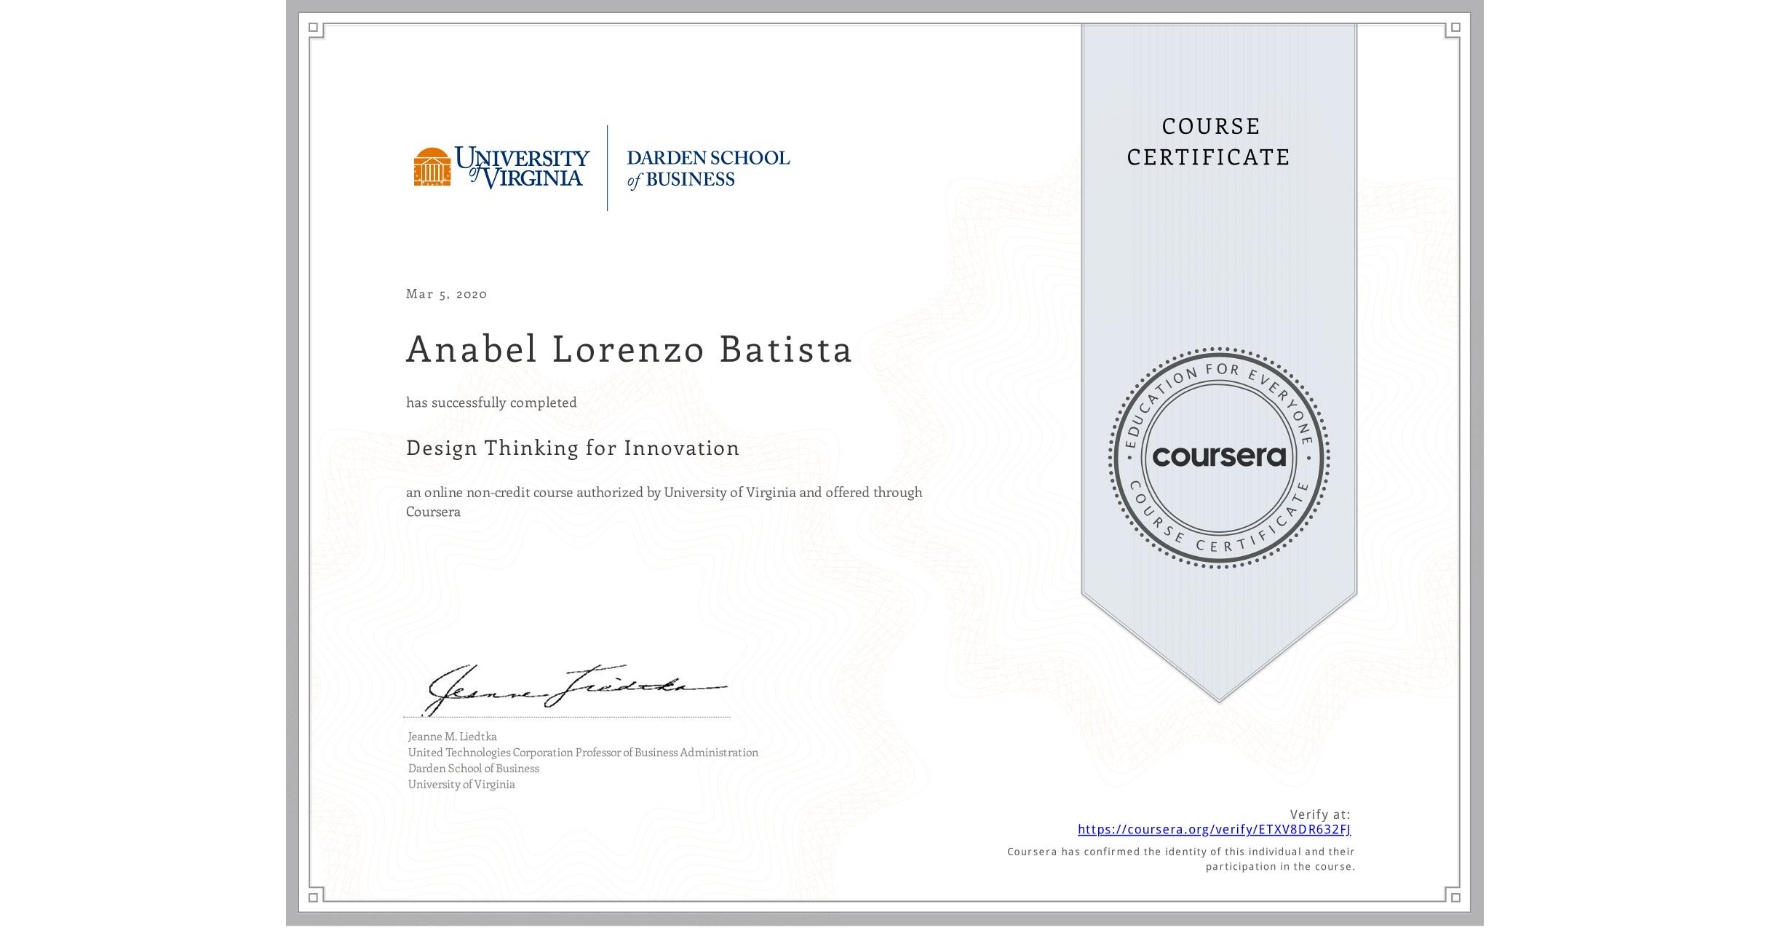 View certificate for Anabel Lorenzo Batista, Design Thinking for Innovation, an online non-credit course authorized by University of Virginia and offered through Coursera